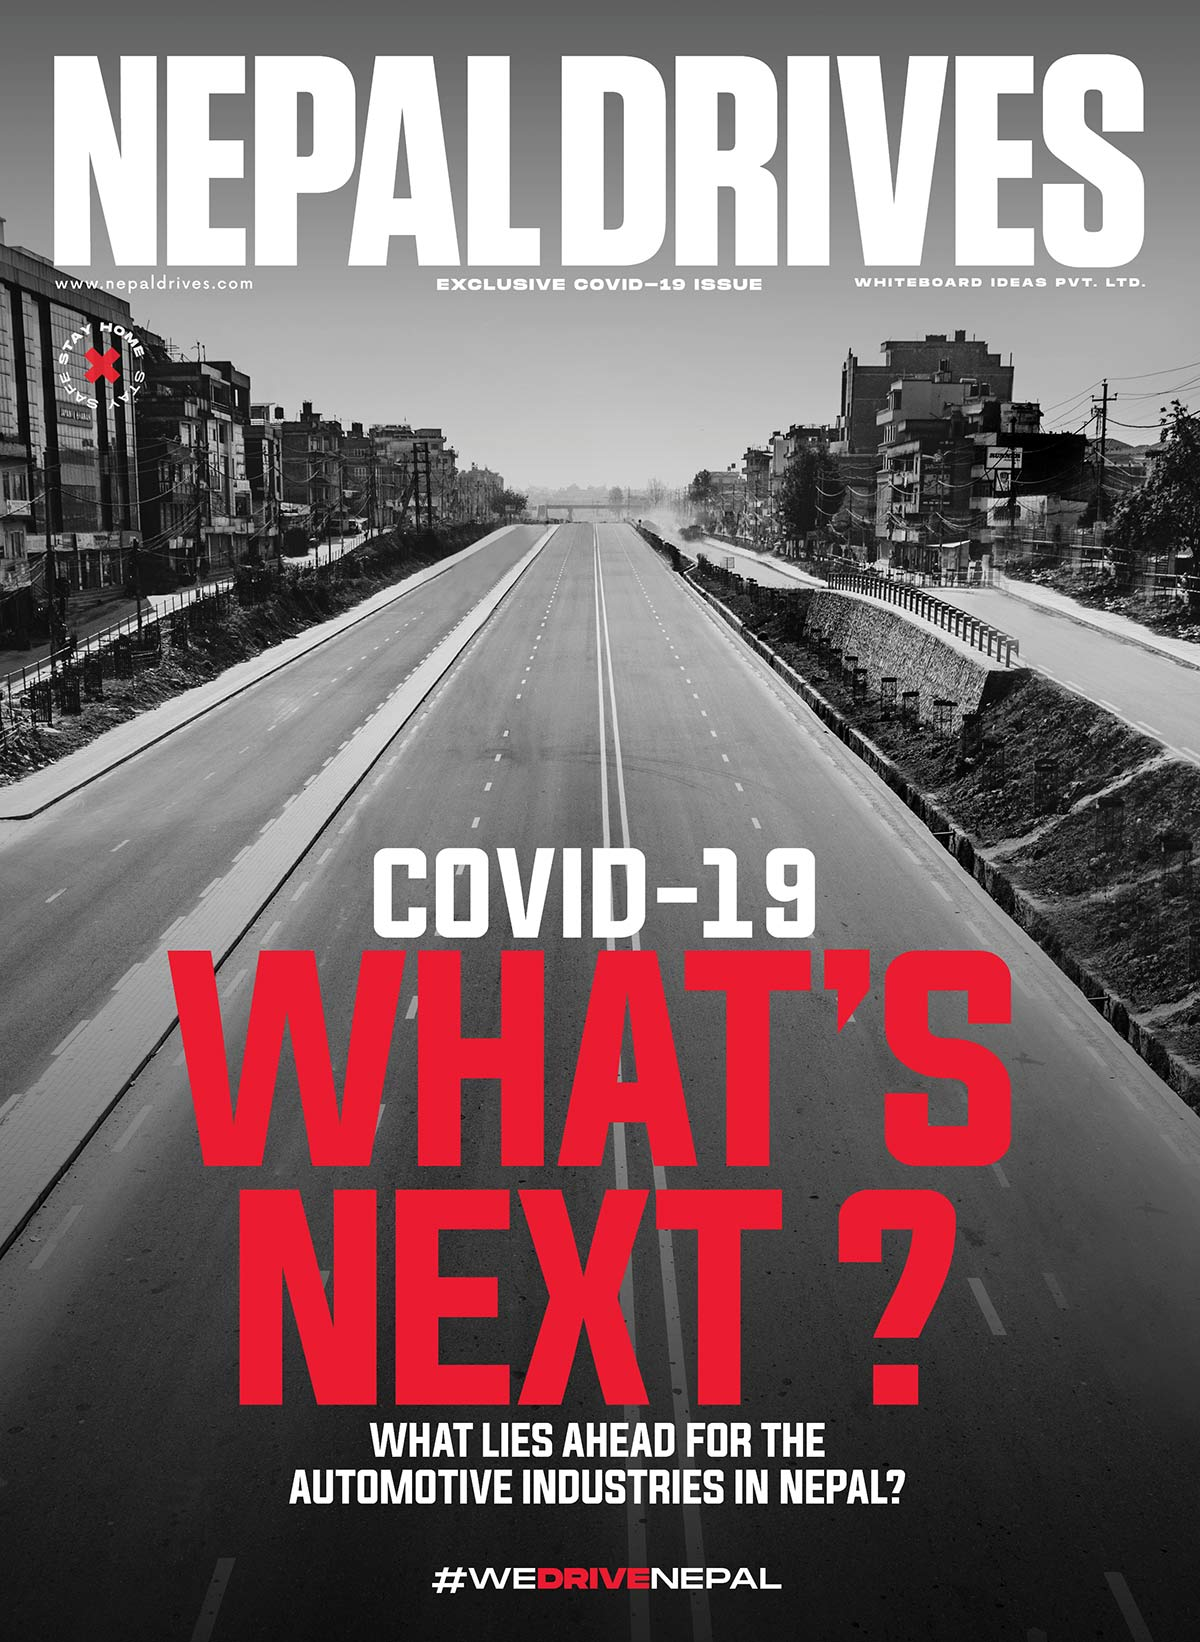 Nepal Drives Covid19 Special Issue Cover